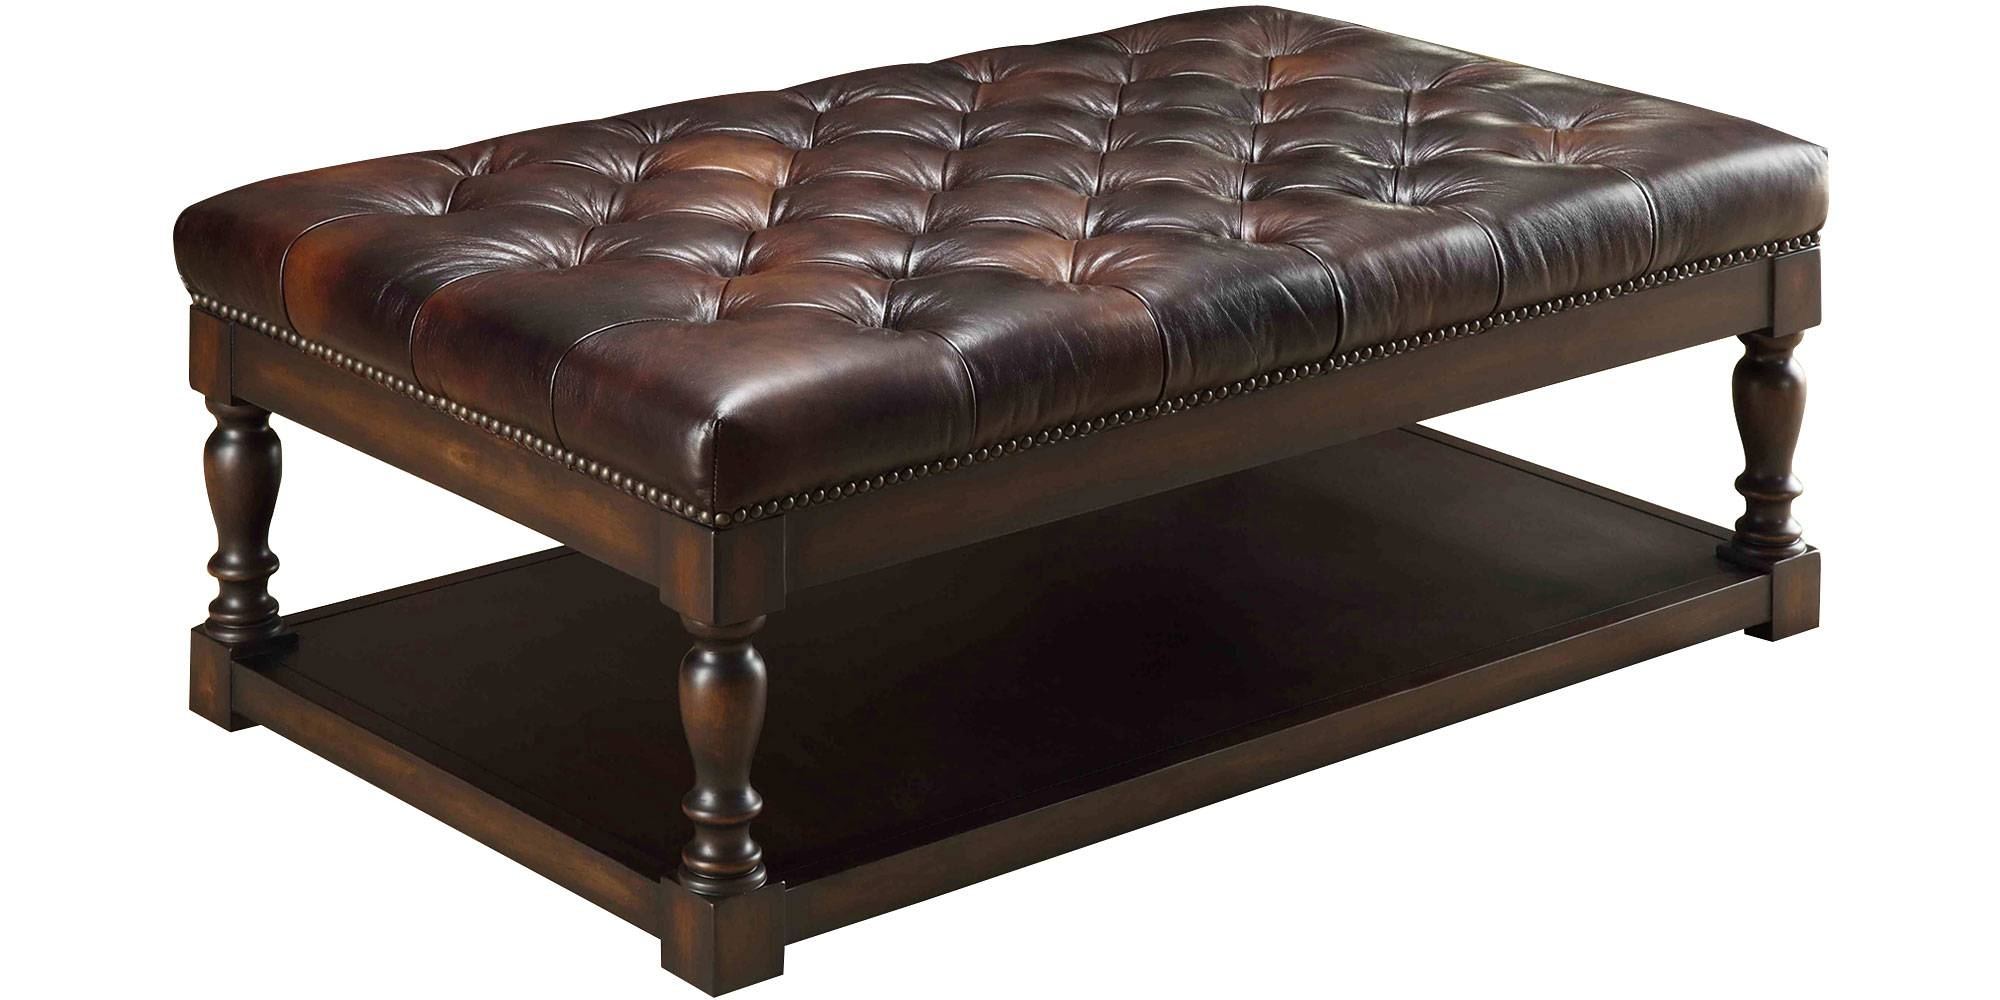 Coffee Table: Appealing Large Ottoman Coffee Table Design Ideas regarding Large Coffee Table With Storage (Image 2 of 12)